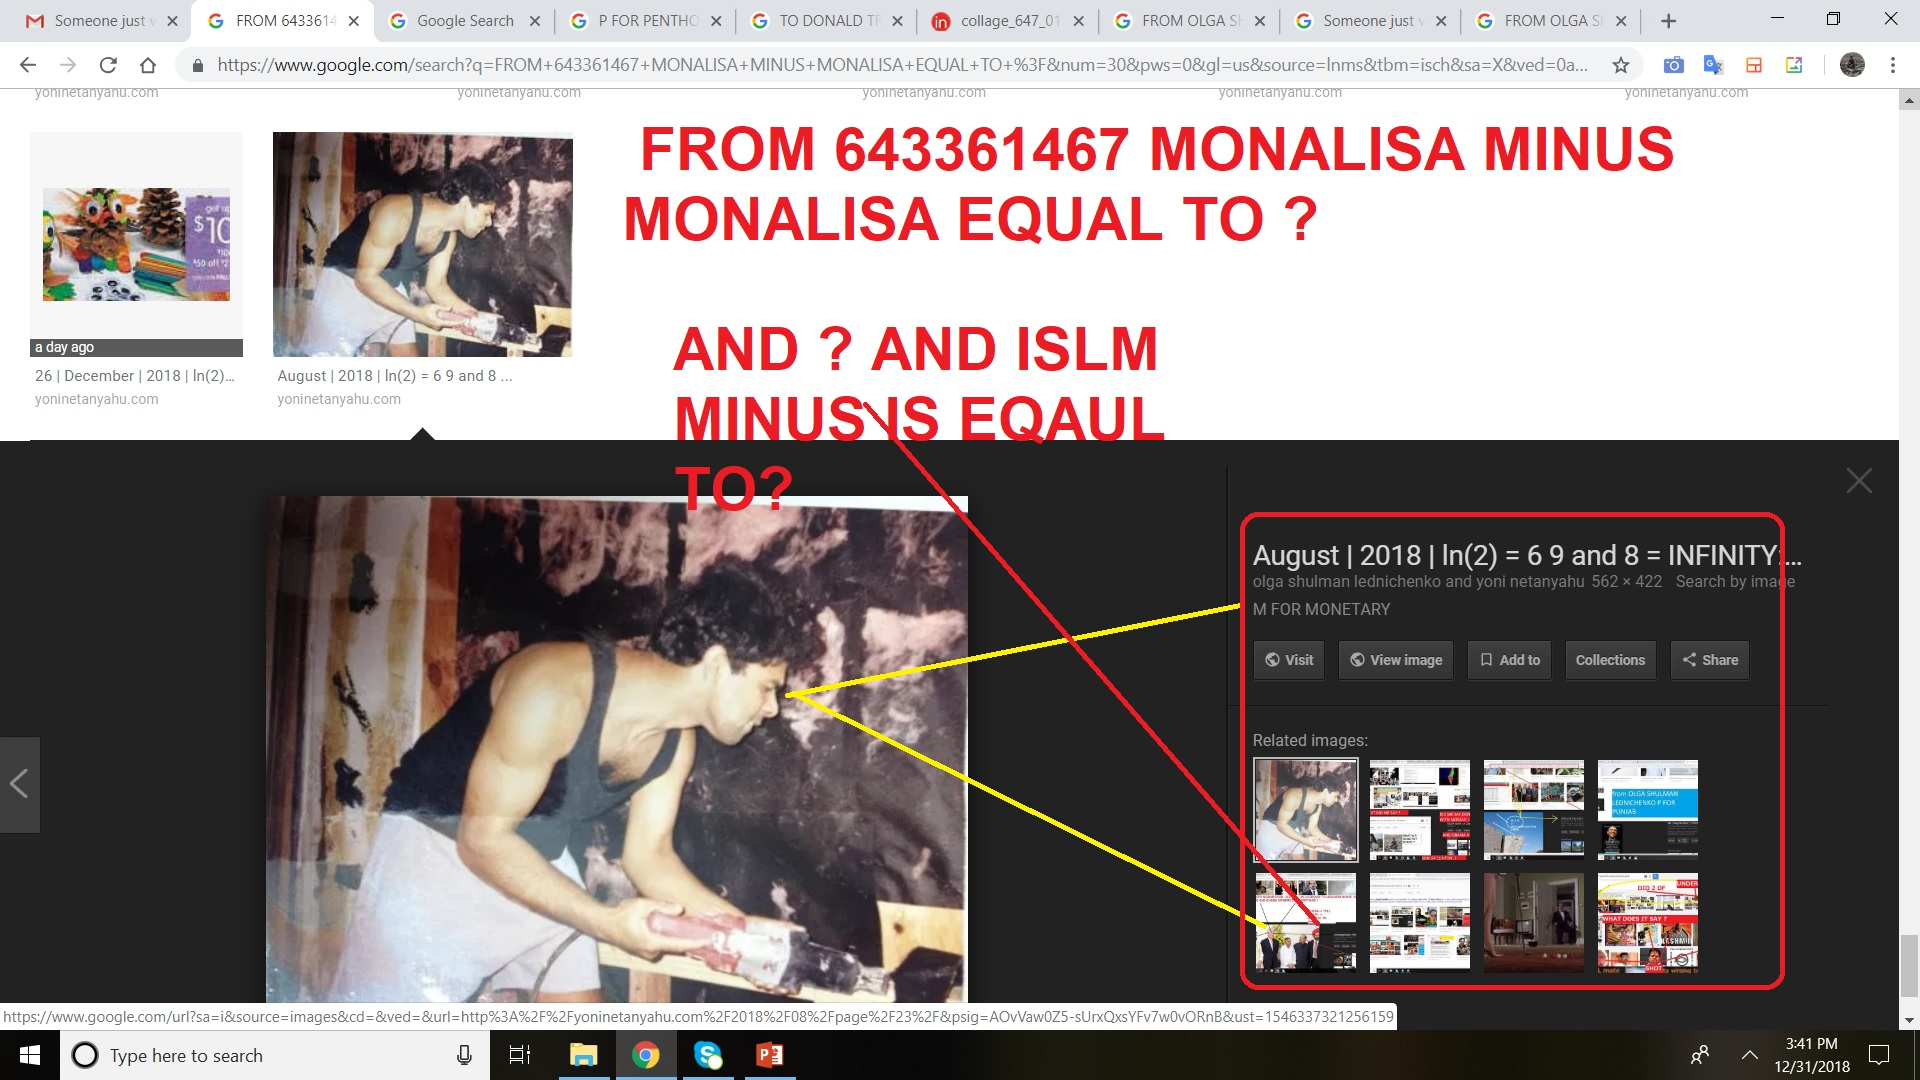 FROM 643361467 MONALISA MINUS MONALISA EQUAL TO - THIS TO SANT CHATWAL ALSO